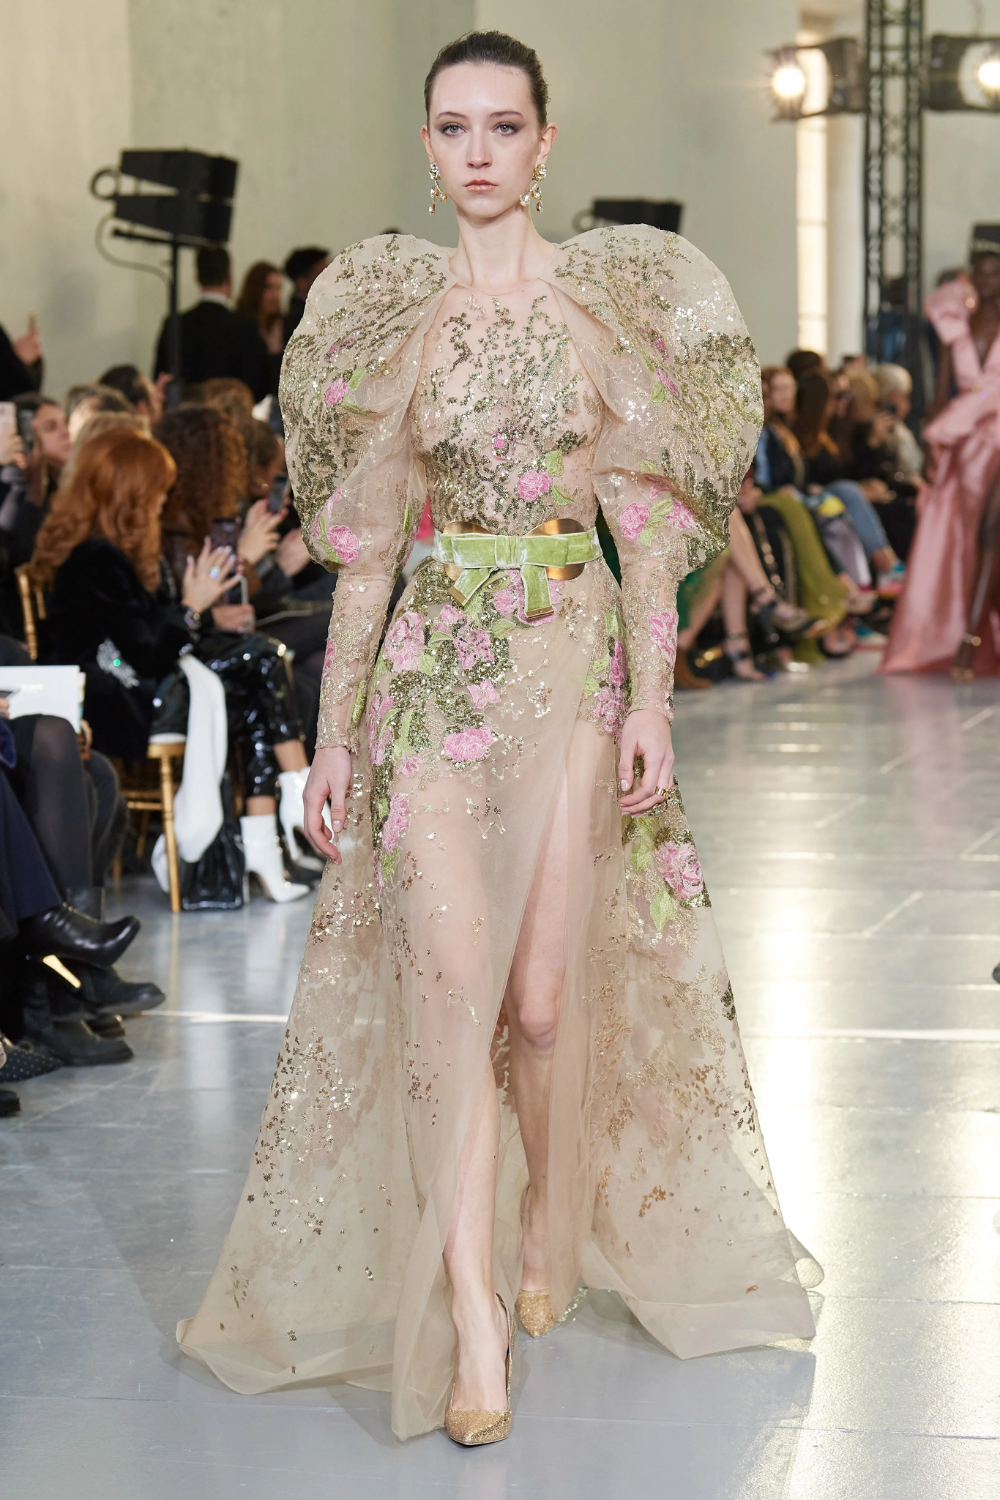 Elie Saab Spring 2020 Couture Collection Vogue In 2020 Fashion Show Elie Saab Spring Couture Fashion